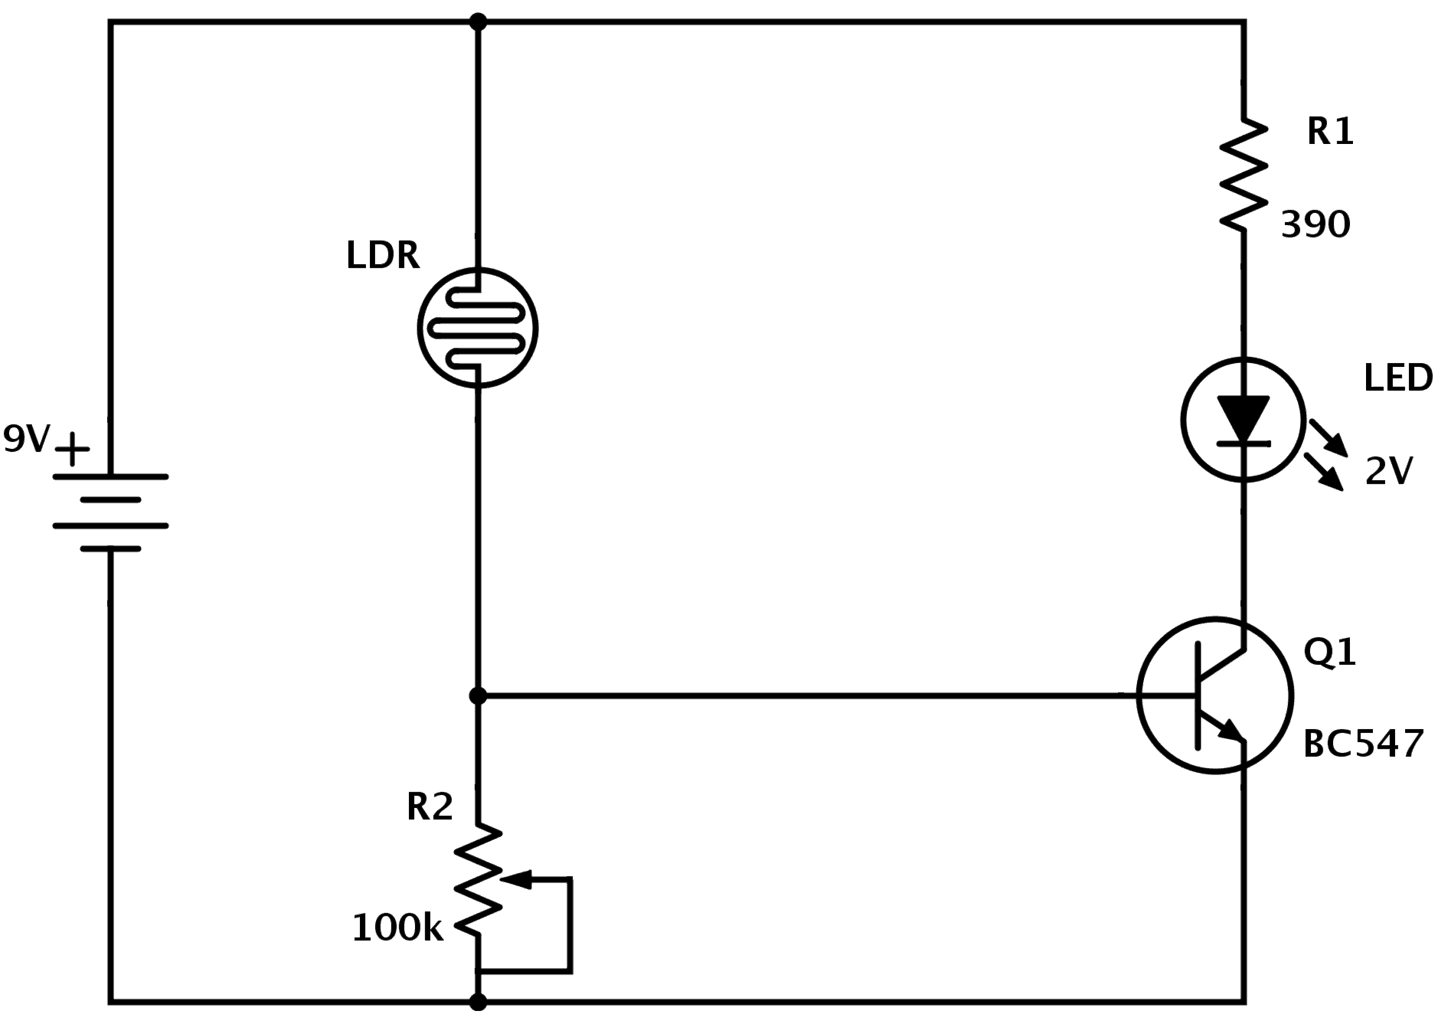 LDR circuit improved circuit diagram how to read and understand any schematic How to Draw a Wiring Diagram ECE at panicattacktreatment.co